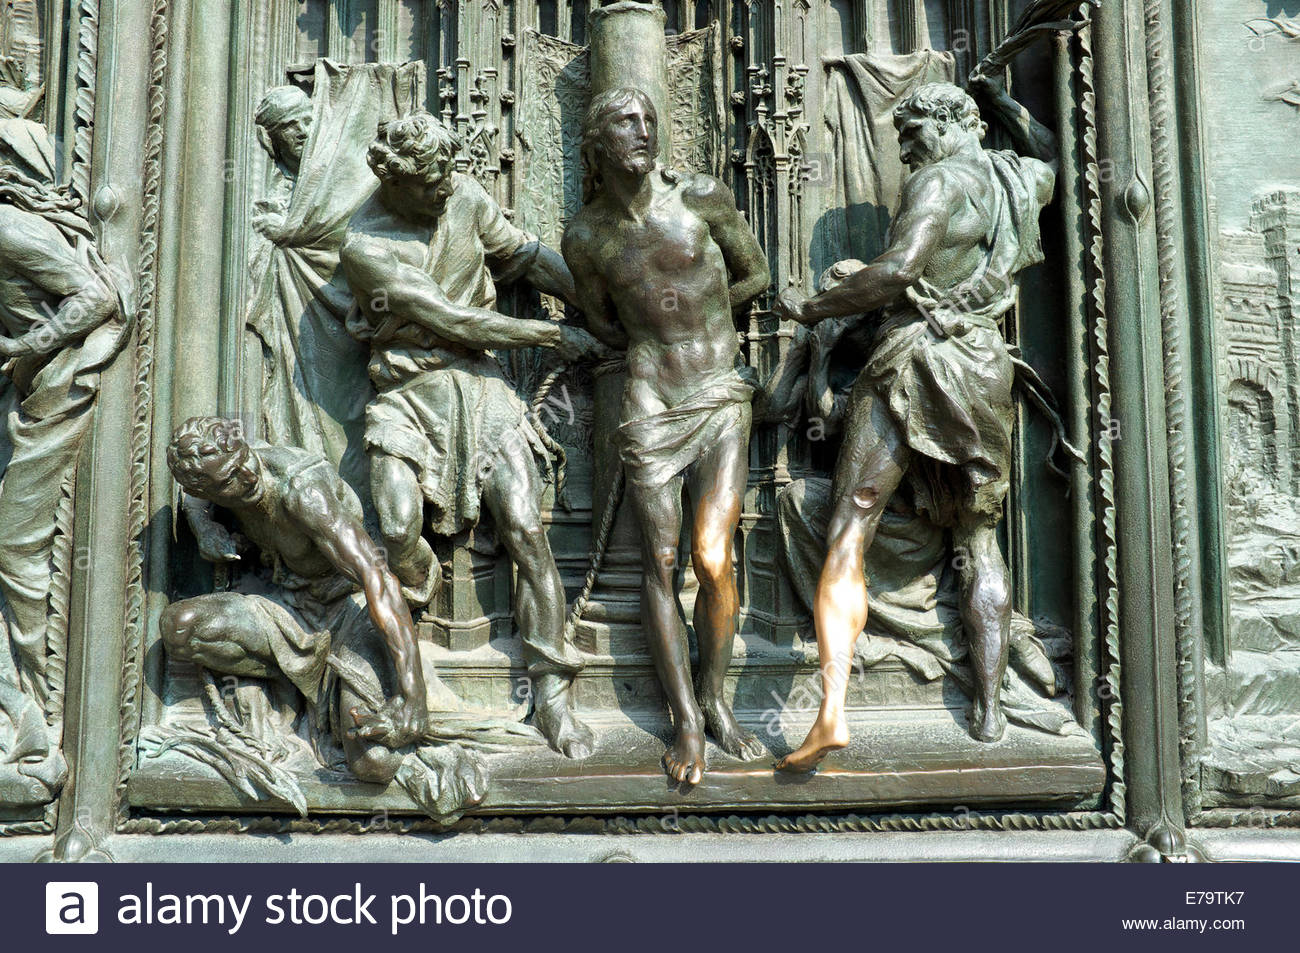 Detail of one of the bronze doors of the Duomo di Milano, showing shiny rubbed parts on the sculpture. Milan, Lombardy, - Stock Image